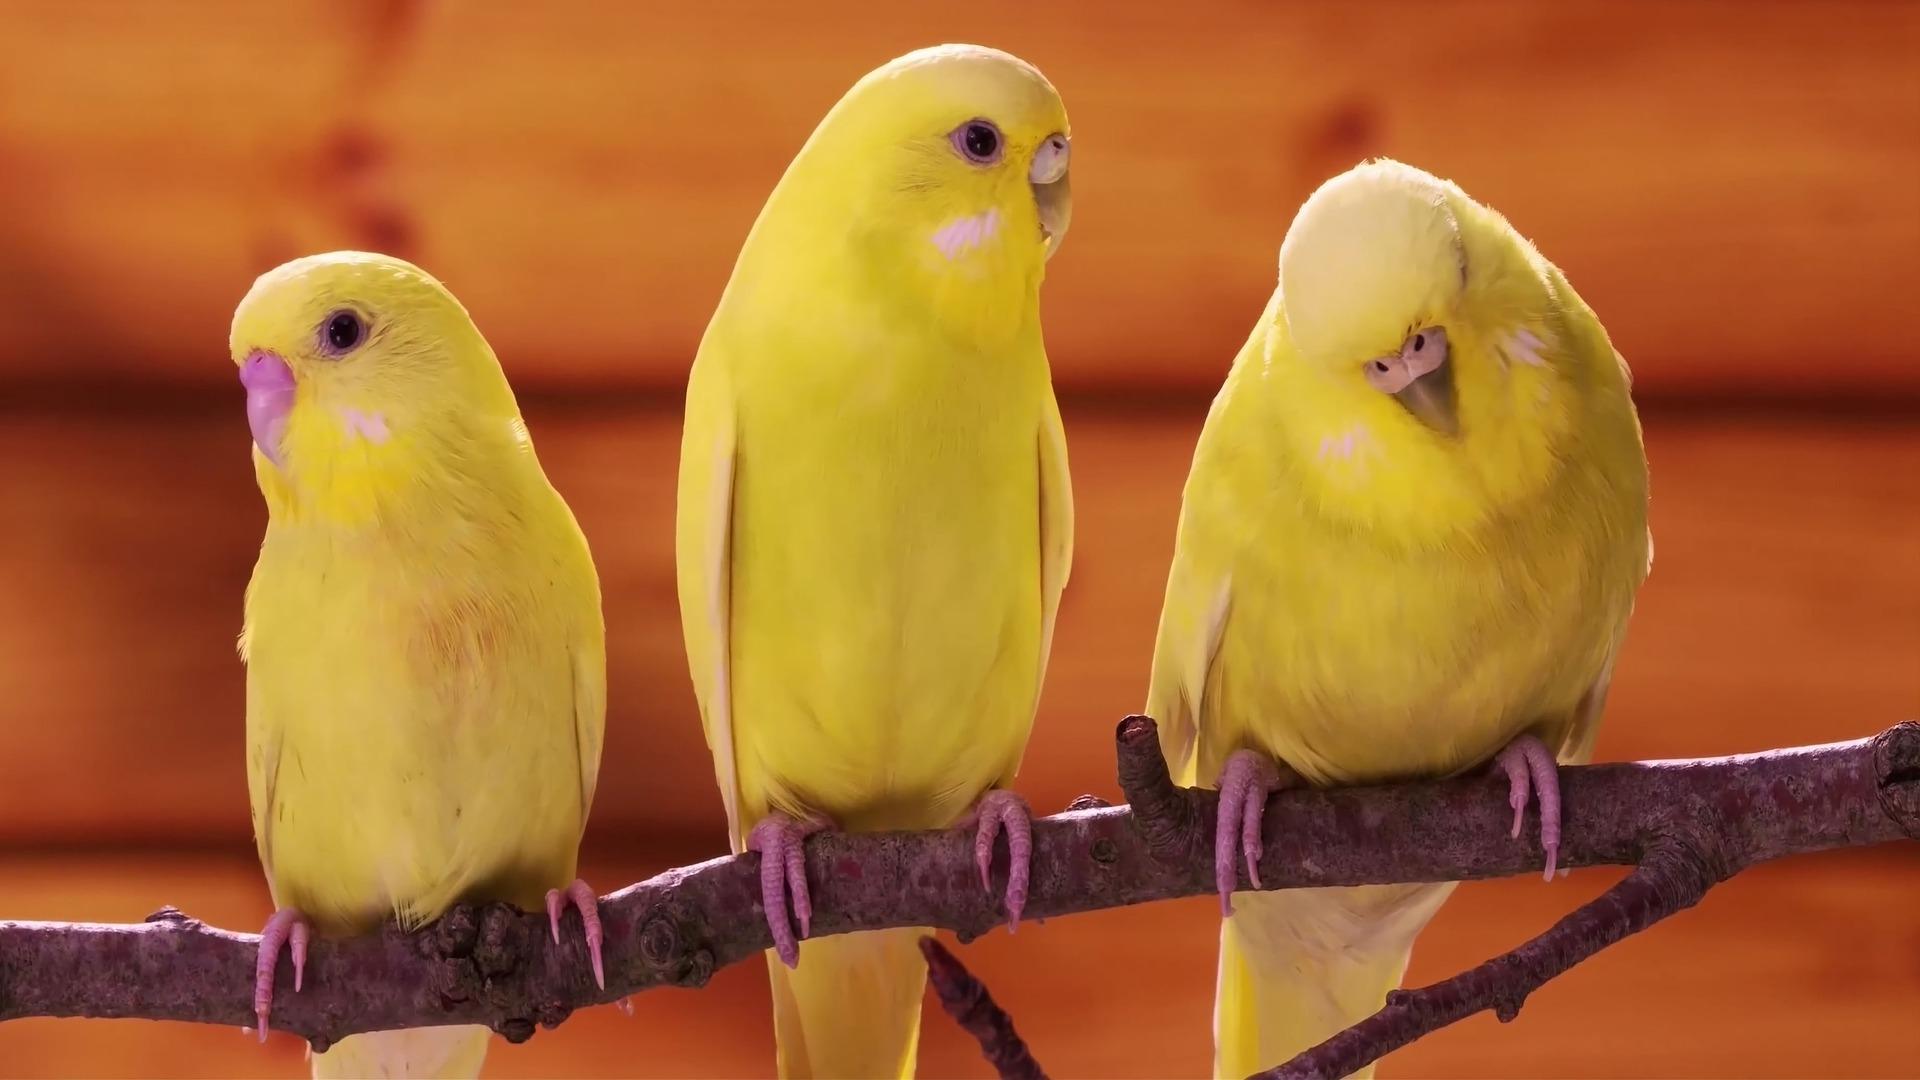 3 Yellow Canary Birds on a twig